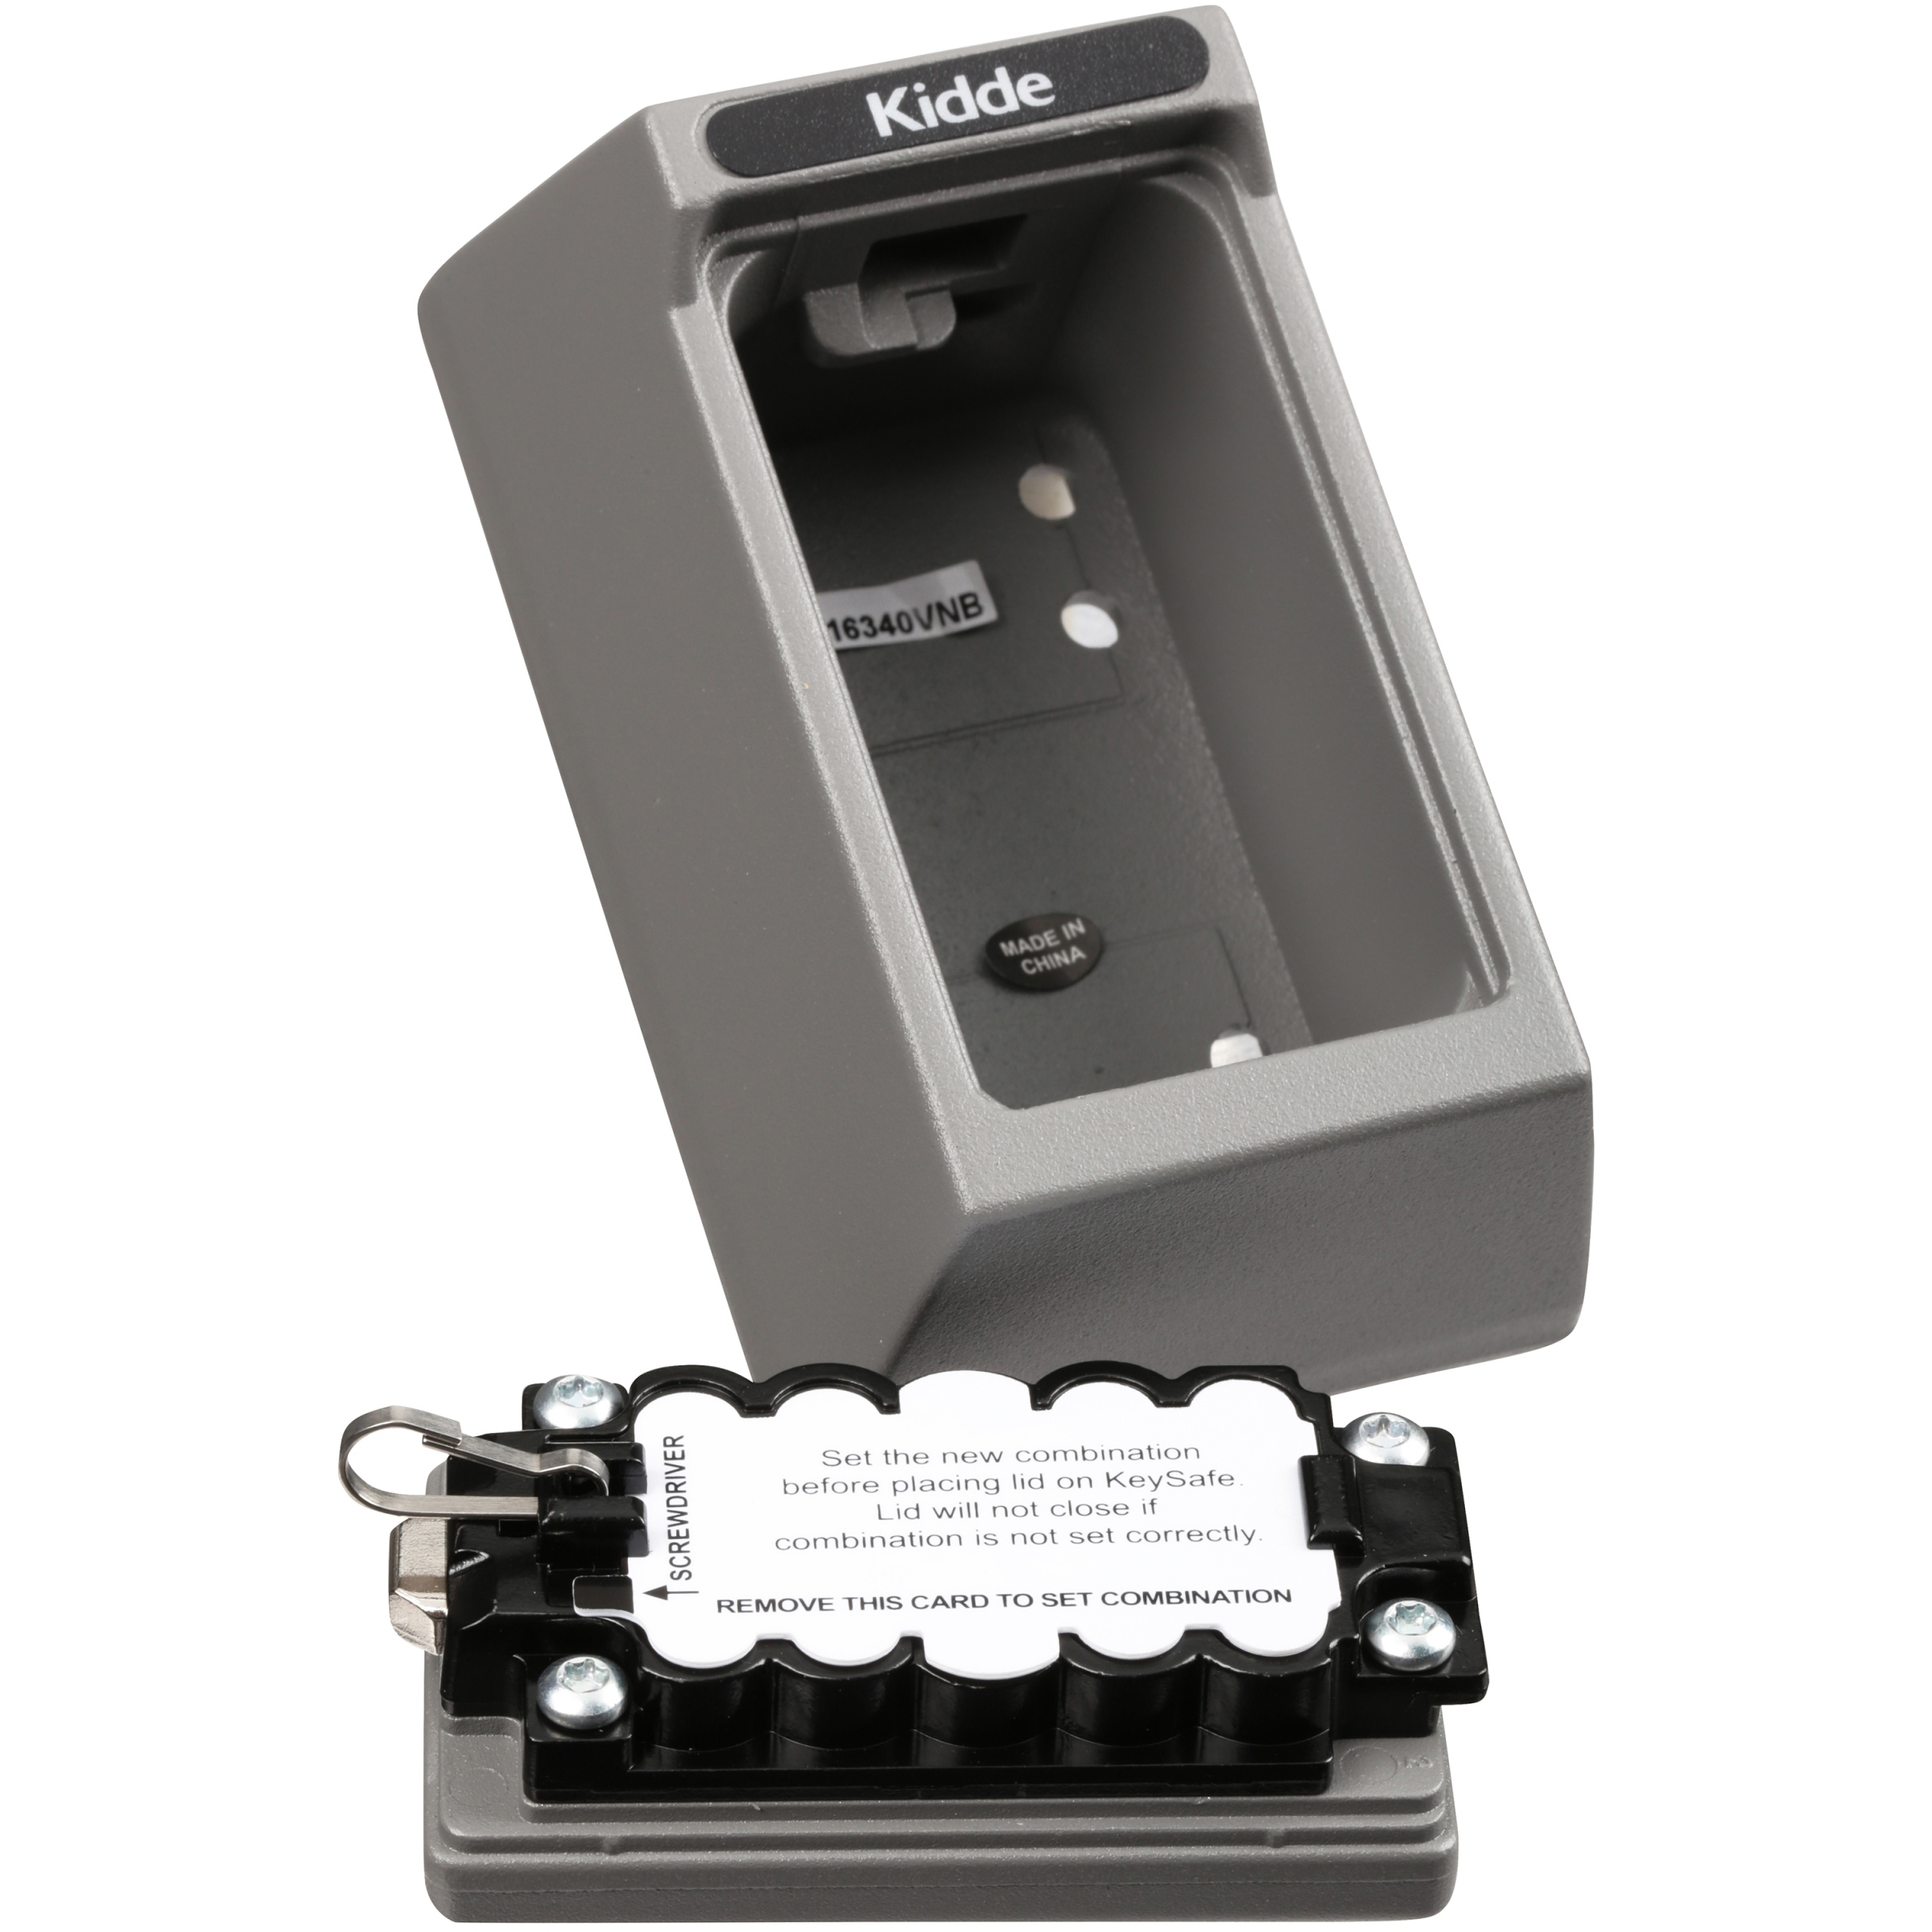 Kidde Keysafe 5 Key Keysafe Permanent Mount Combination Keybox Titanium  Plated